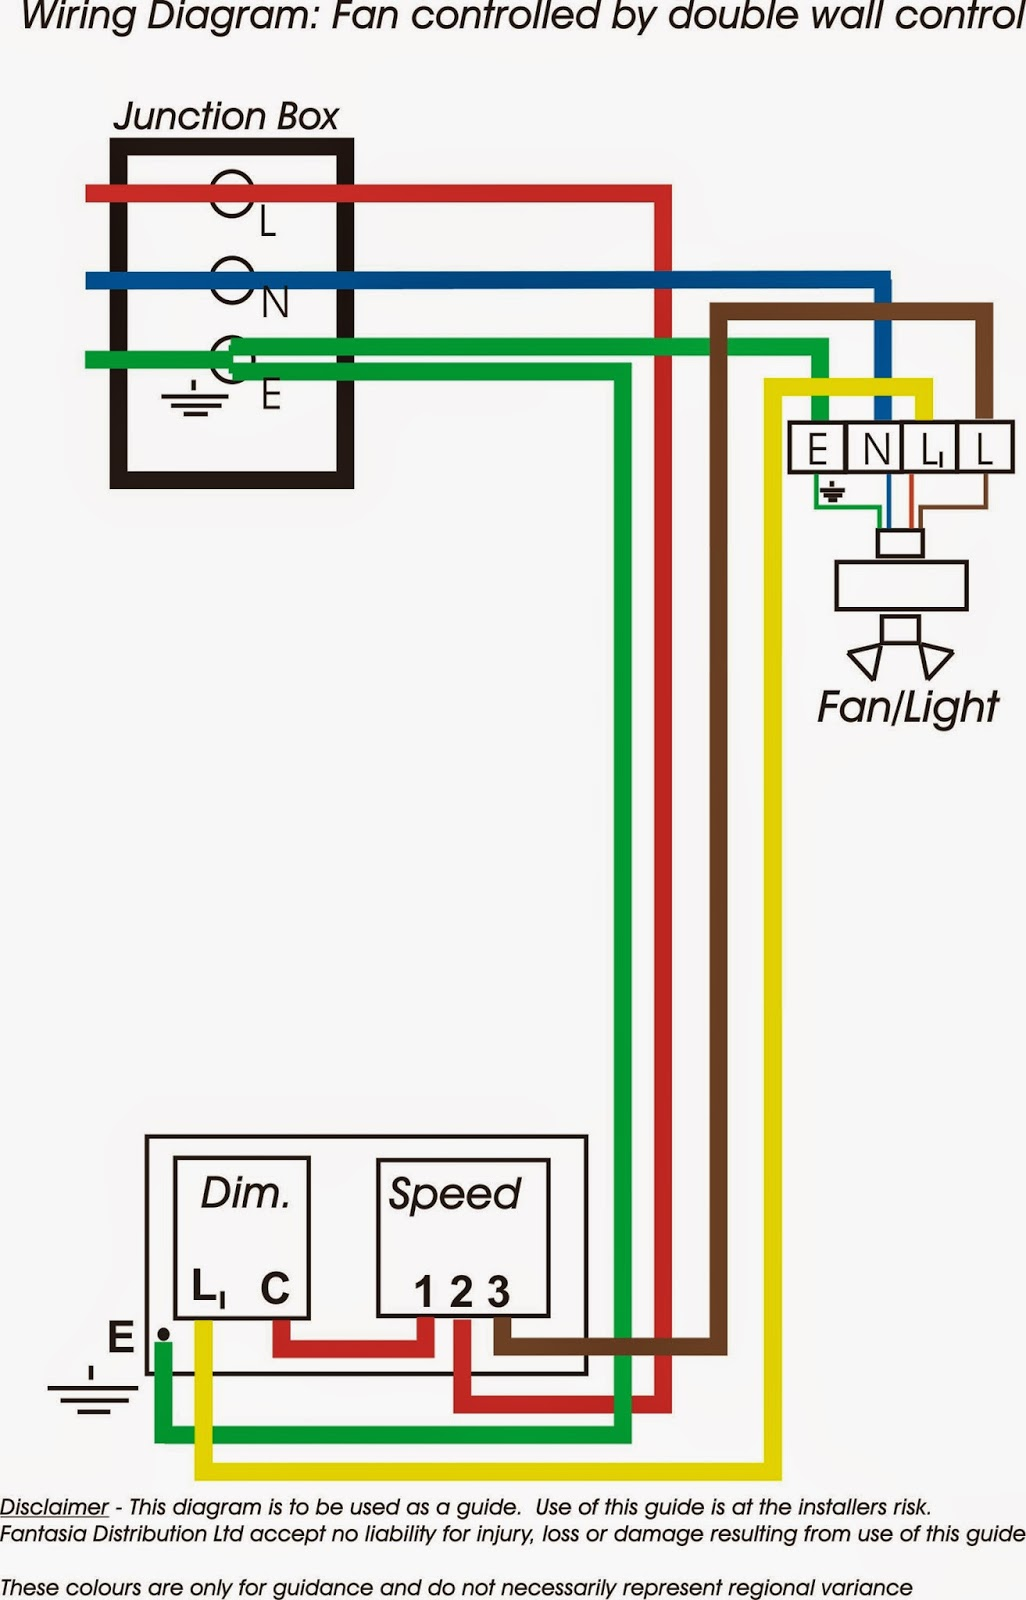 electric work: wiring diagram lt panel control wiring diagram control wiring diagram